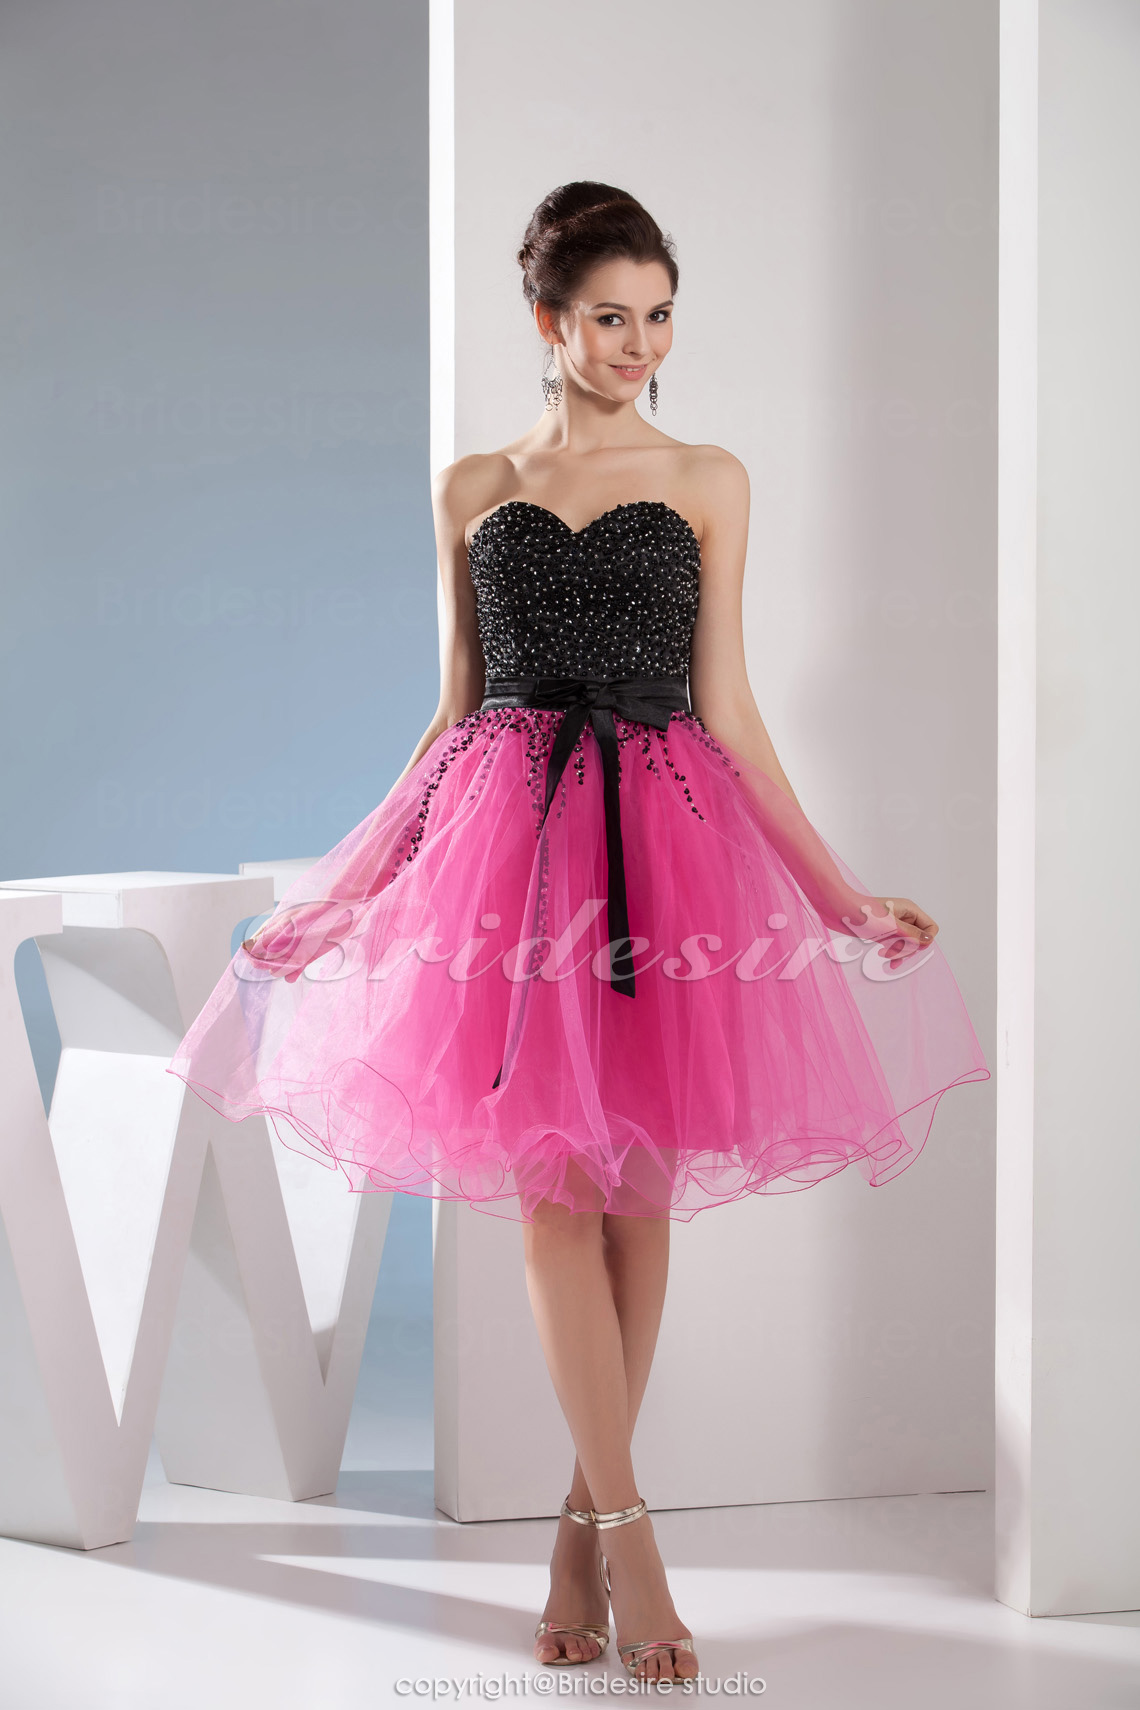 A-line Sweetheart Knee-length Sleeveless Organza Dress